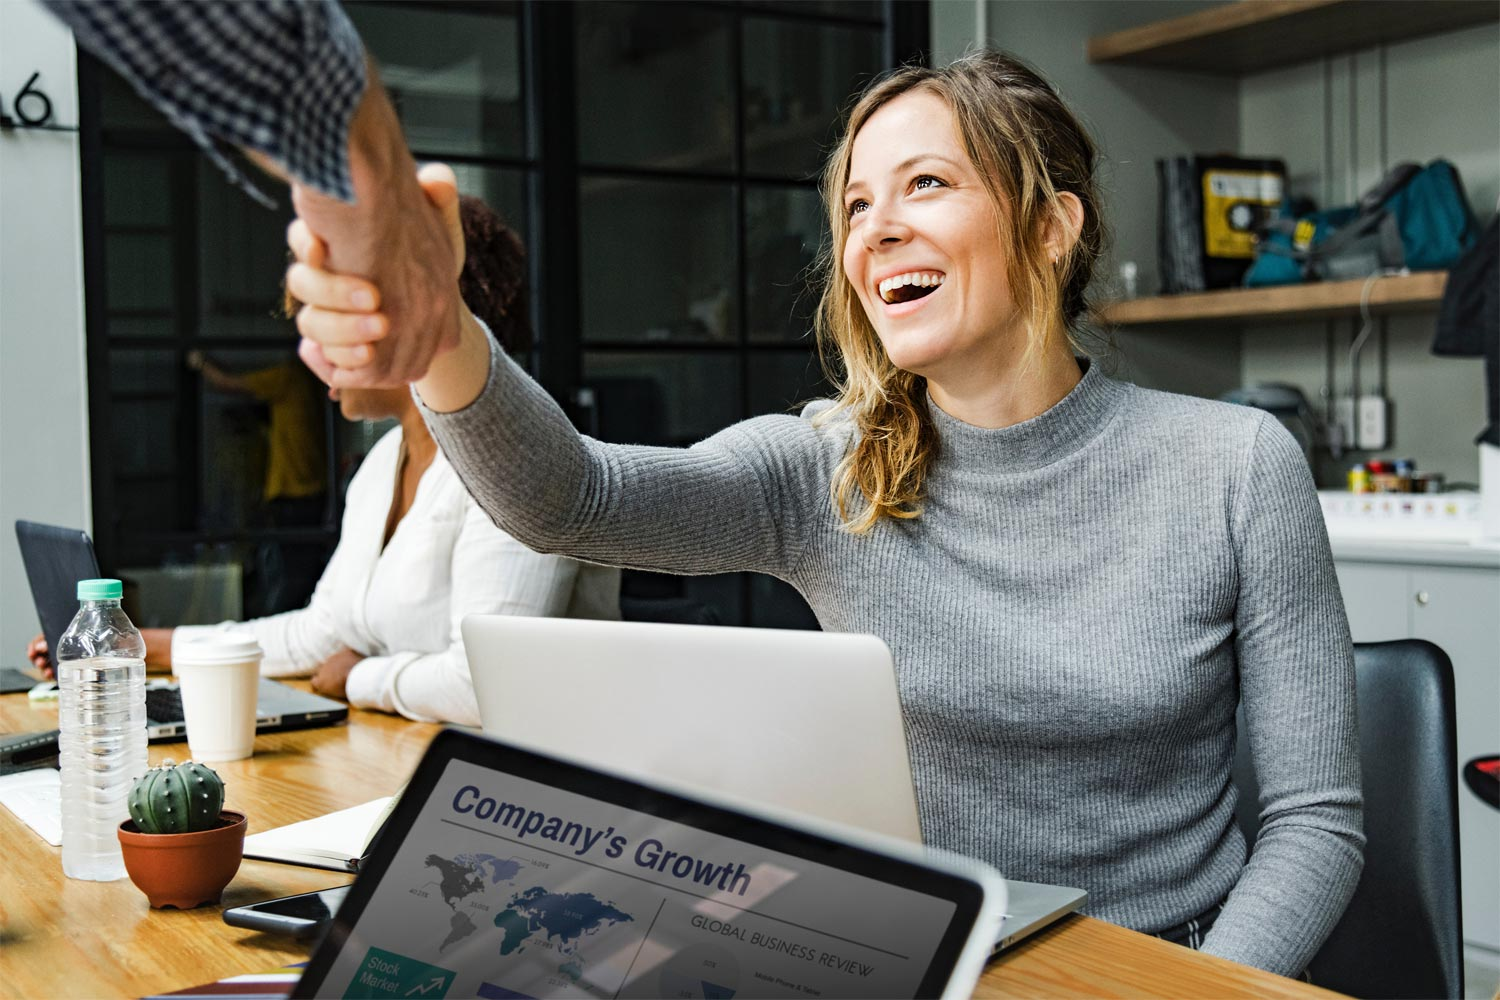 young woman smiling while shaking business man's hand over Company Growth presentation on laptop